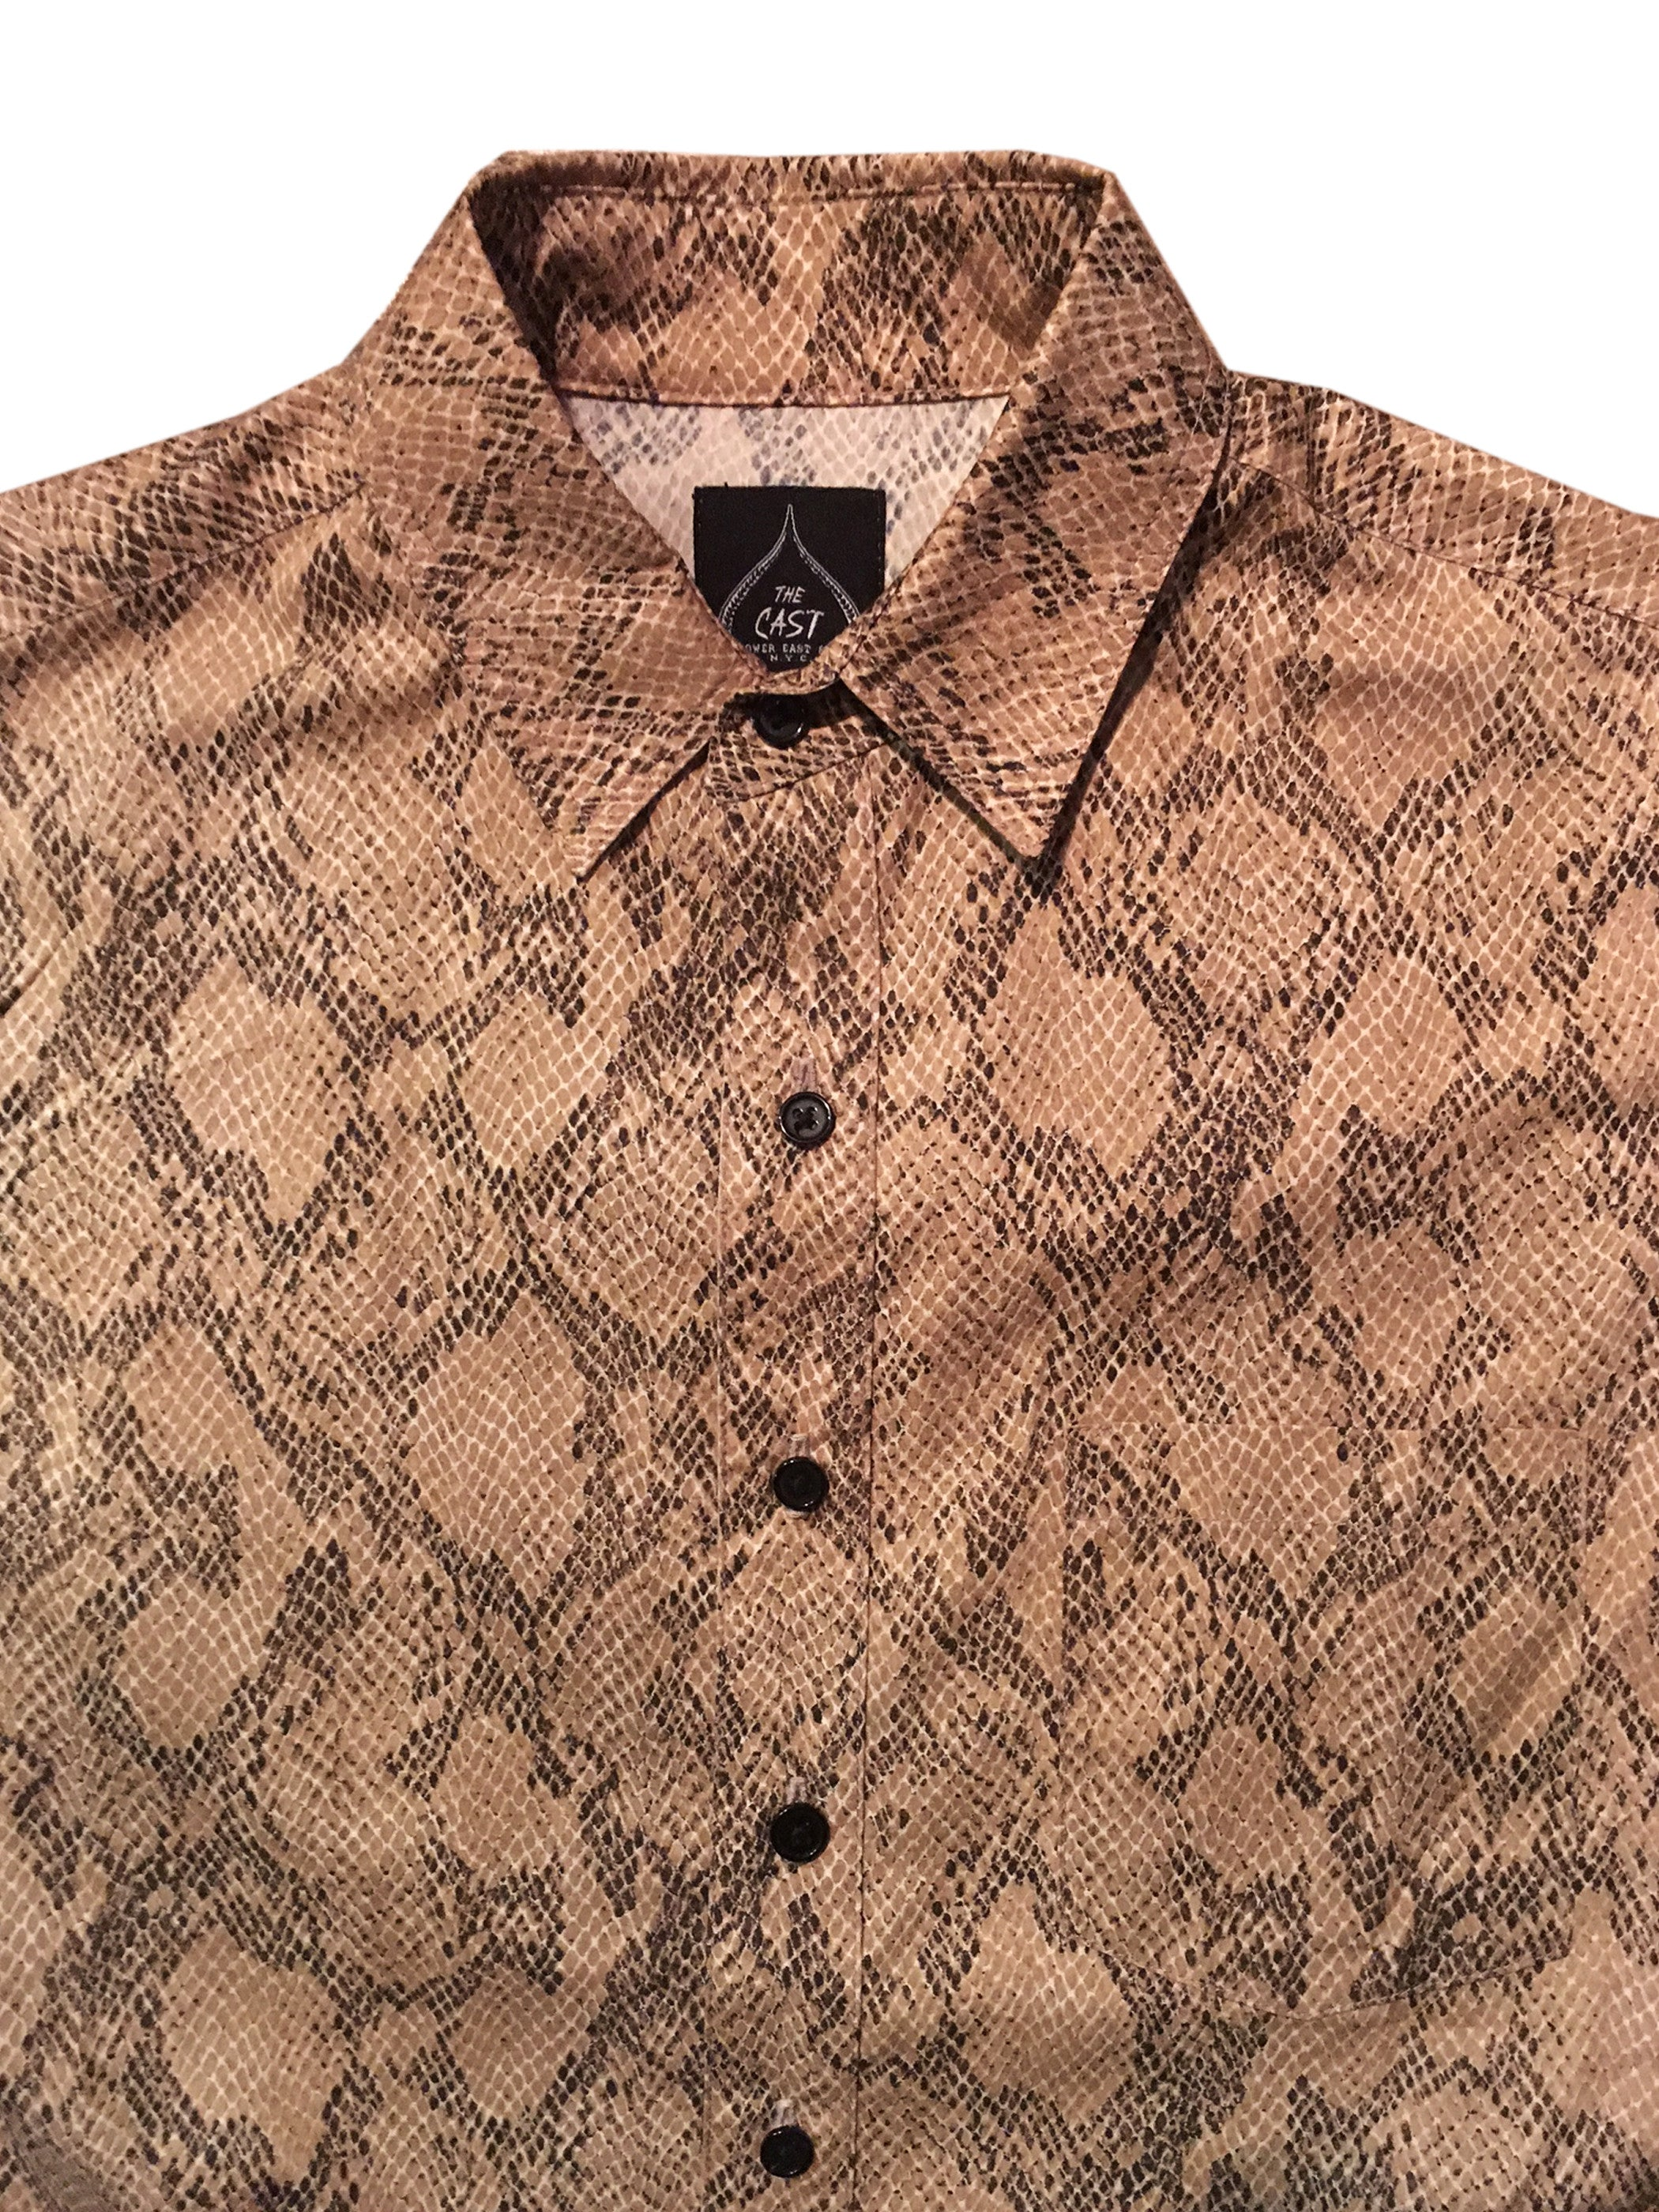 Snakeskin Short Sleeve Button Up